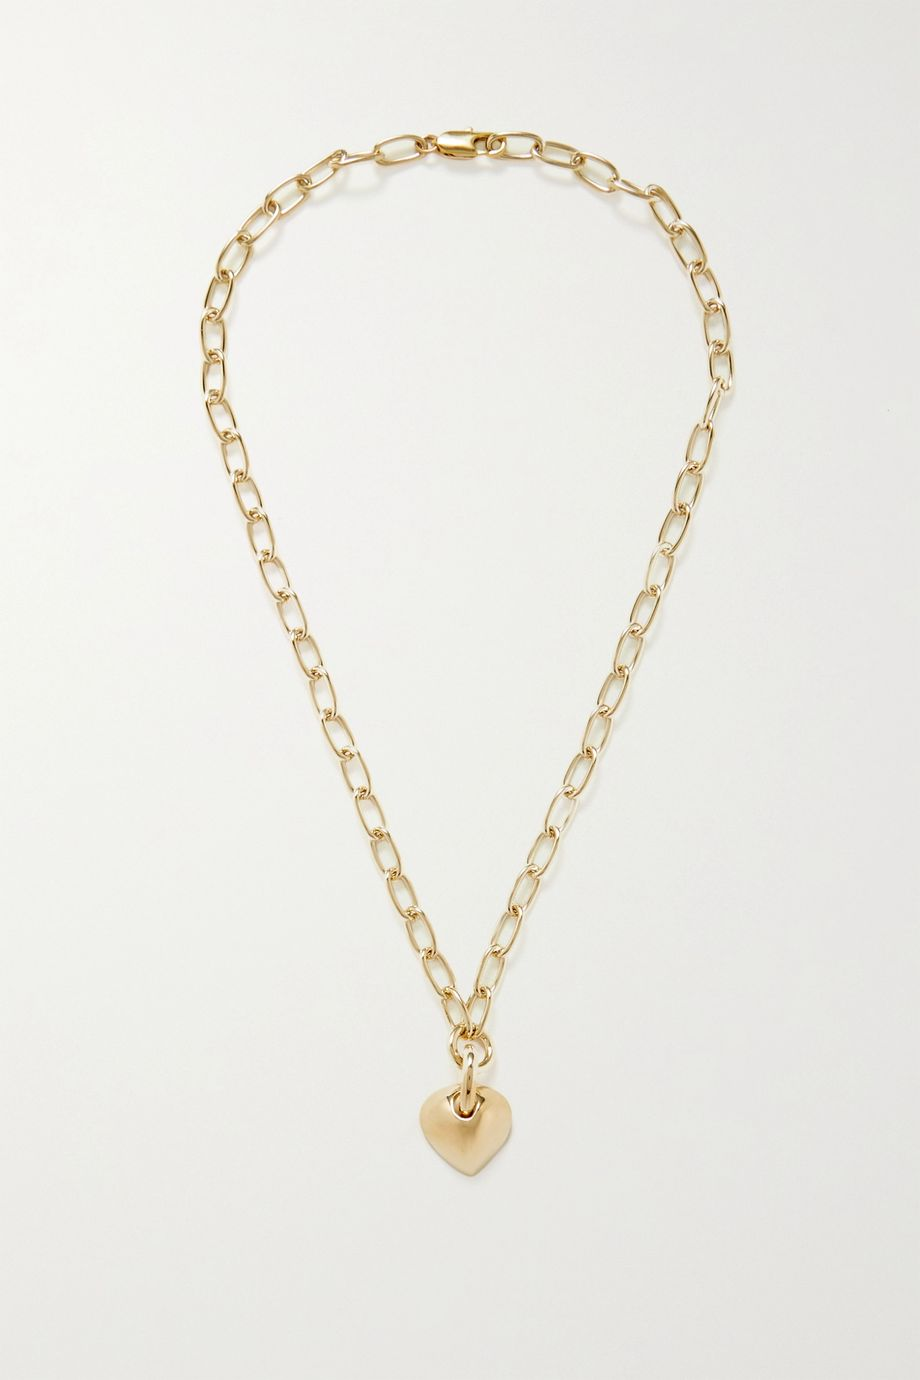 Laura Lombardi Caterina gold-plated necklace